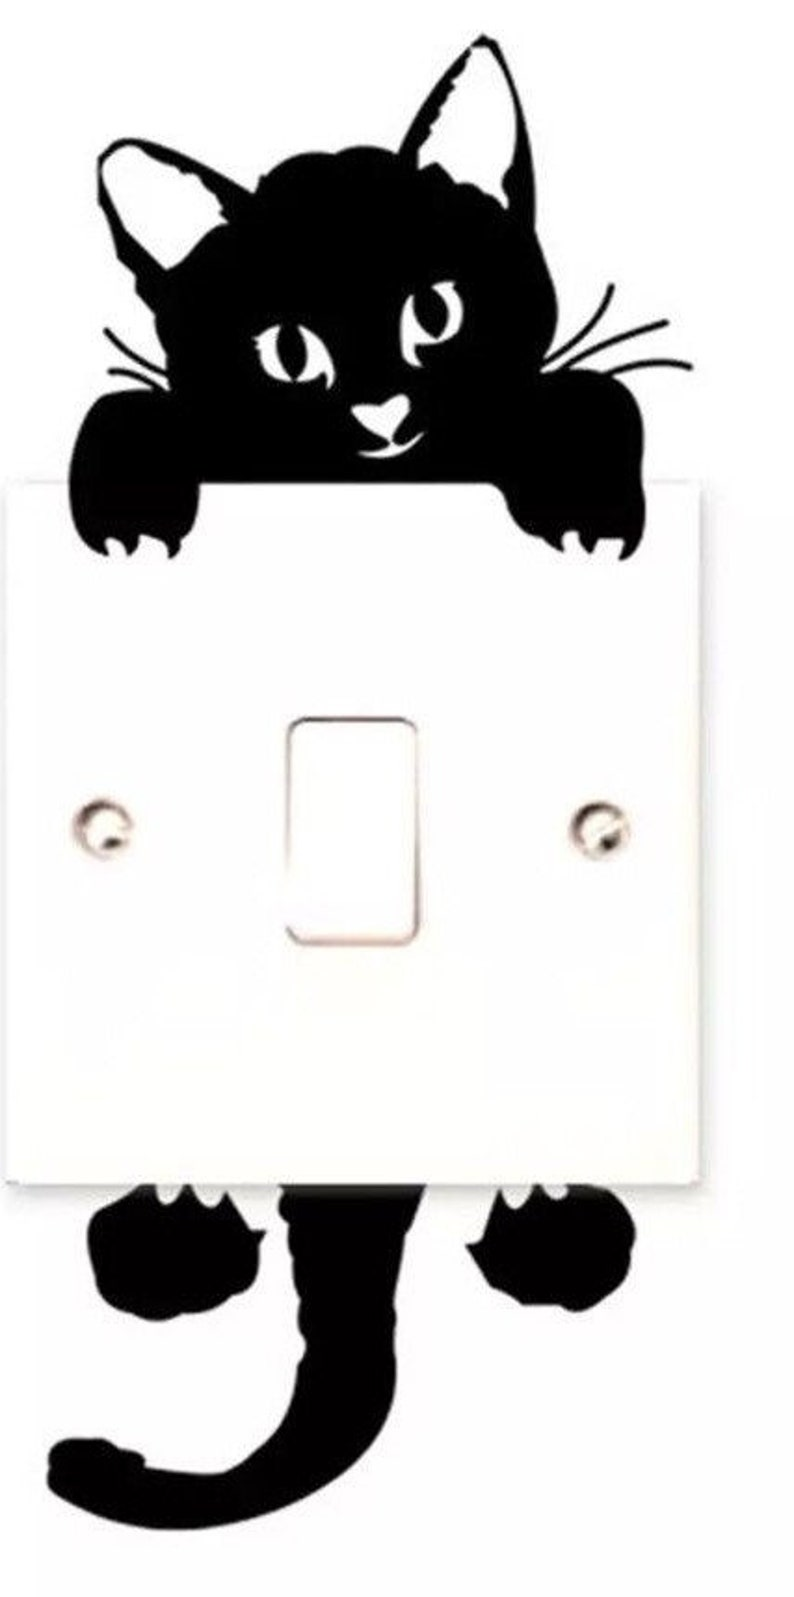 Cat Paws The Movie Light Switch Plate Wall Cover Pet Decor